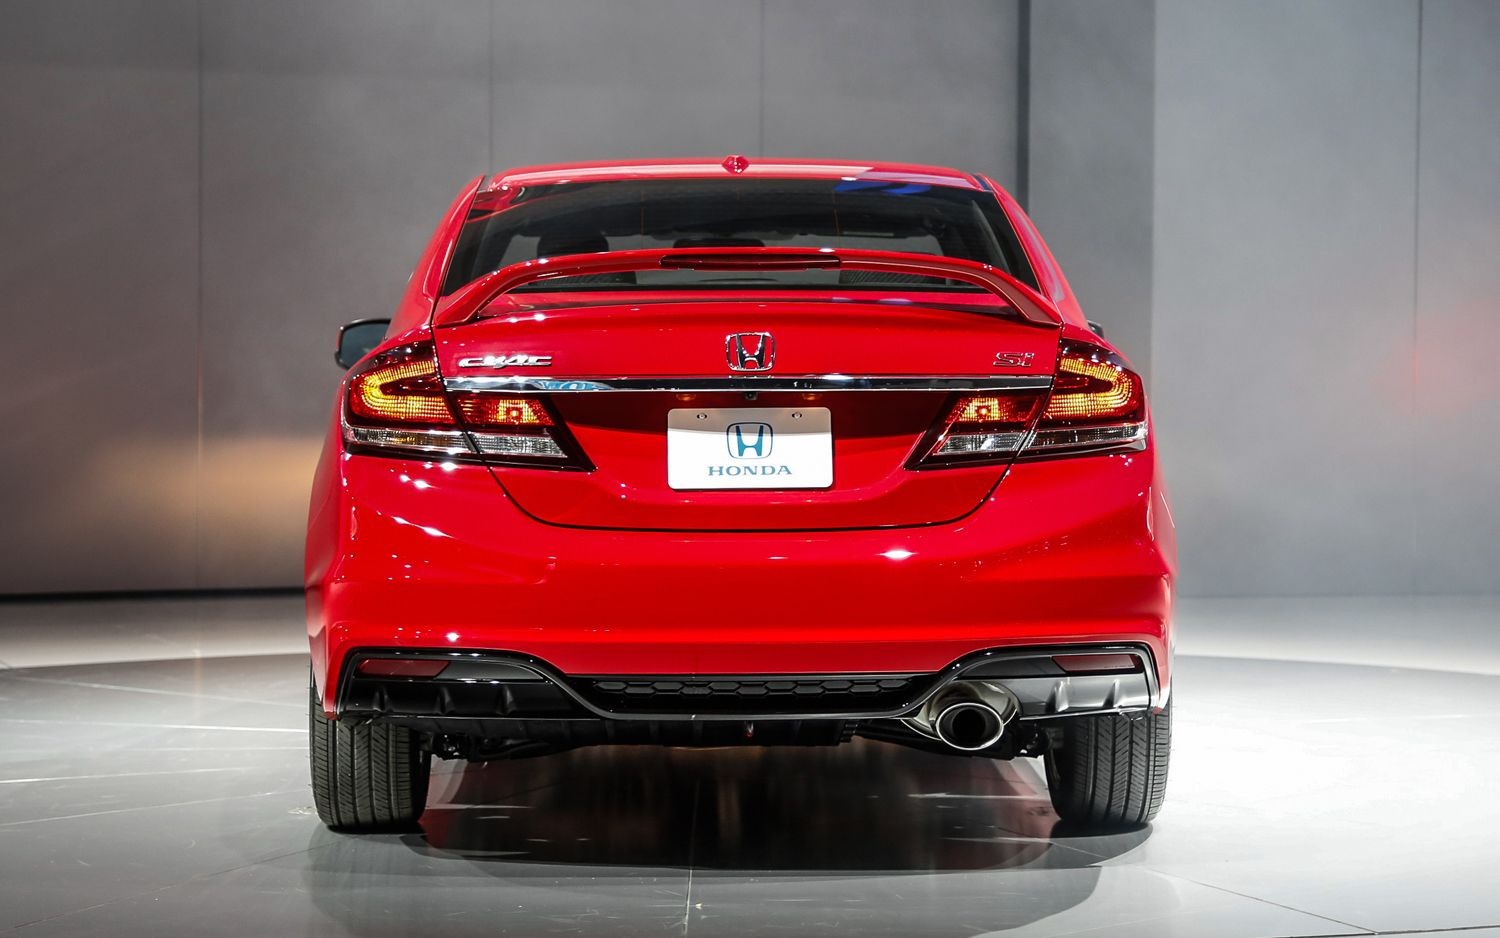 2013 Honda Civic Si Sedan Rear View